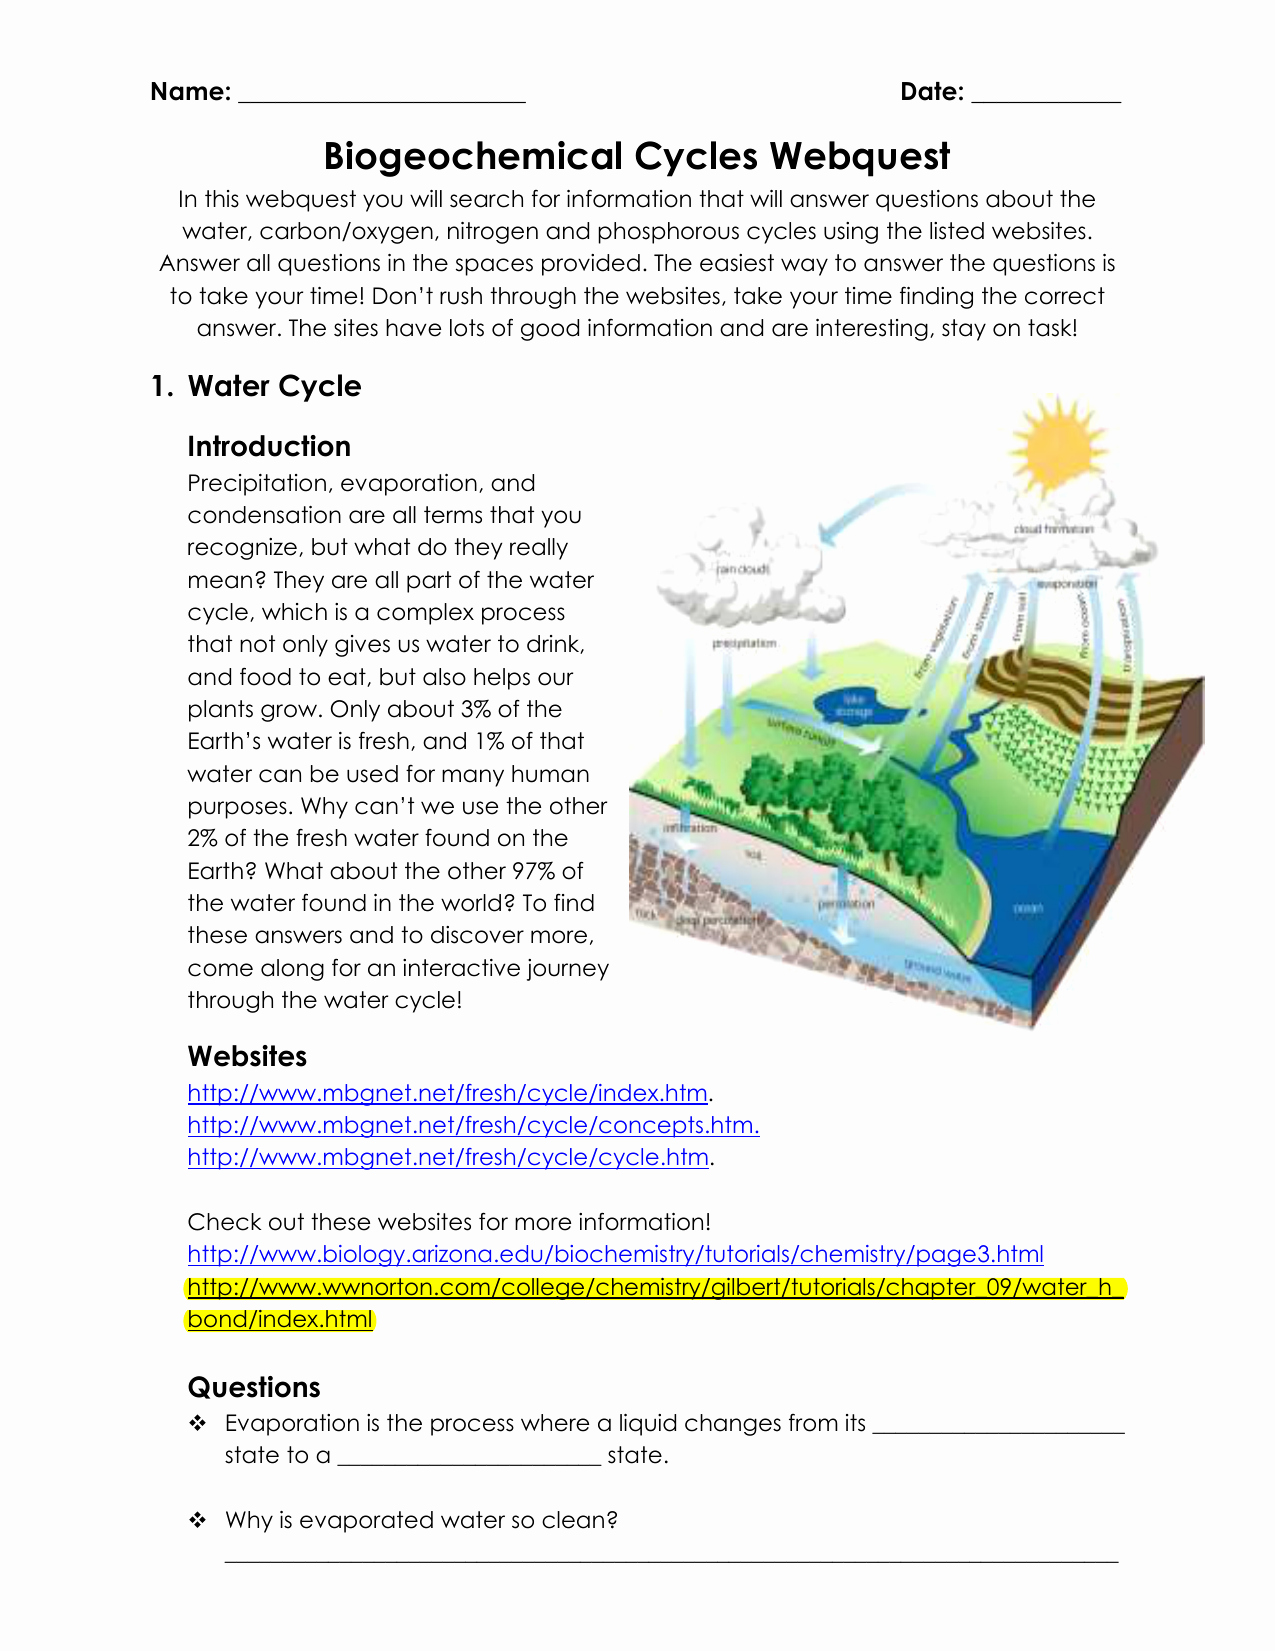 Nutrient Cycles Worksheet Answers Unique Water Carbon and Nitrogen Cycle Worksheet Color Sheet